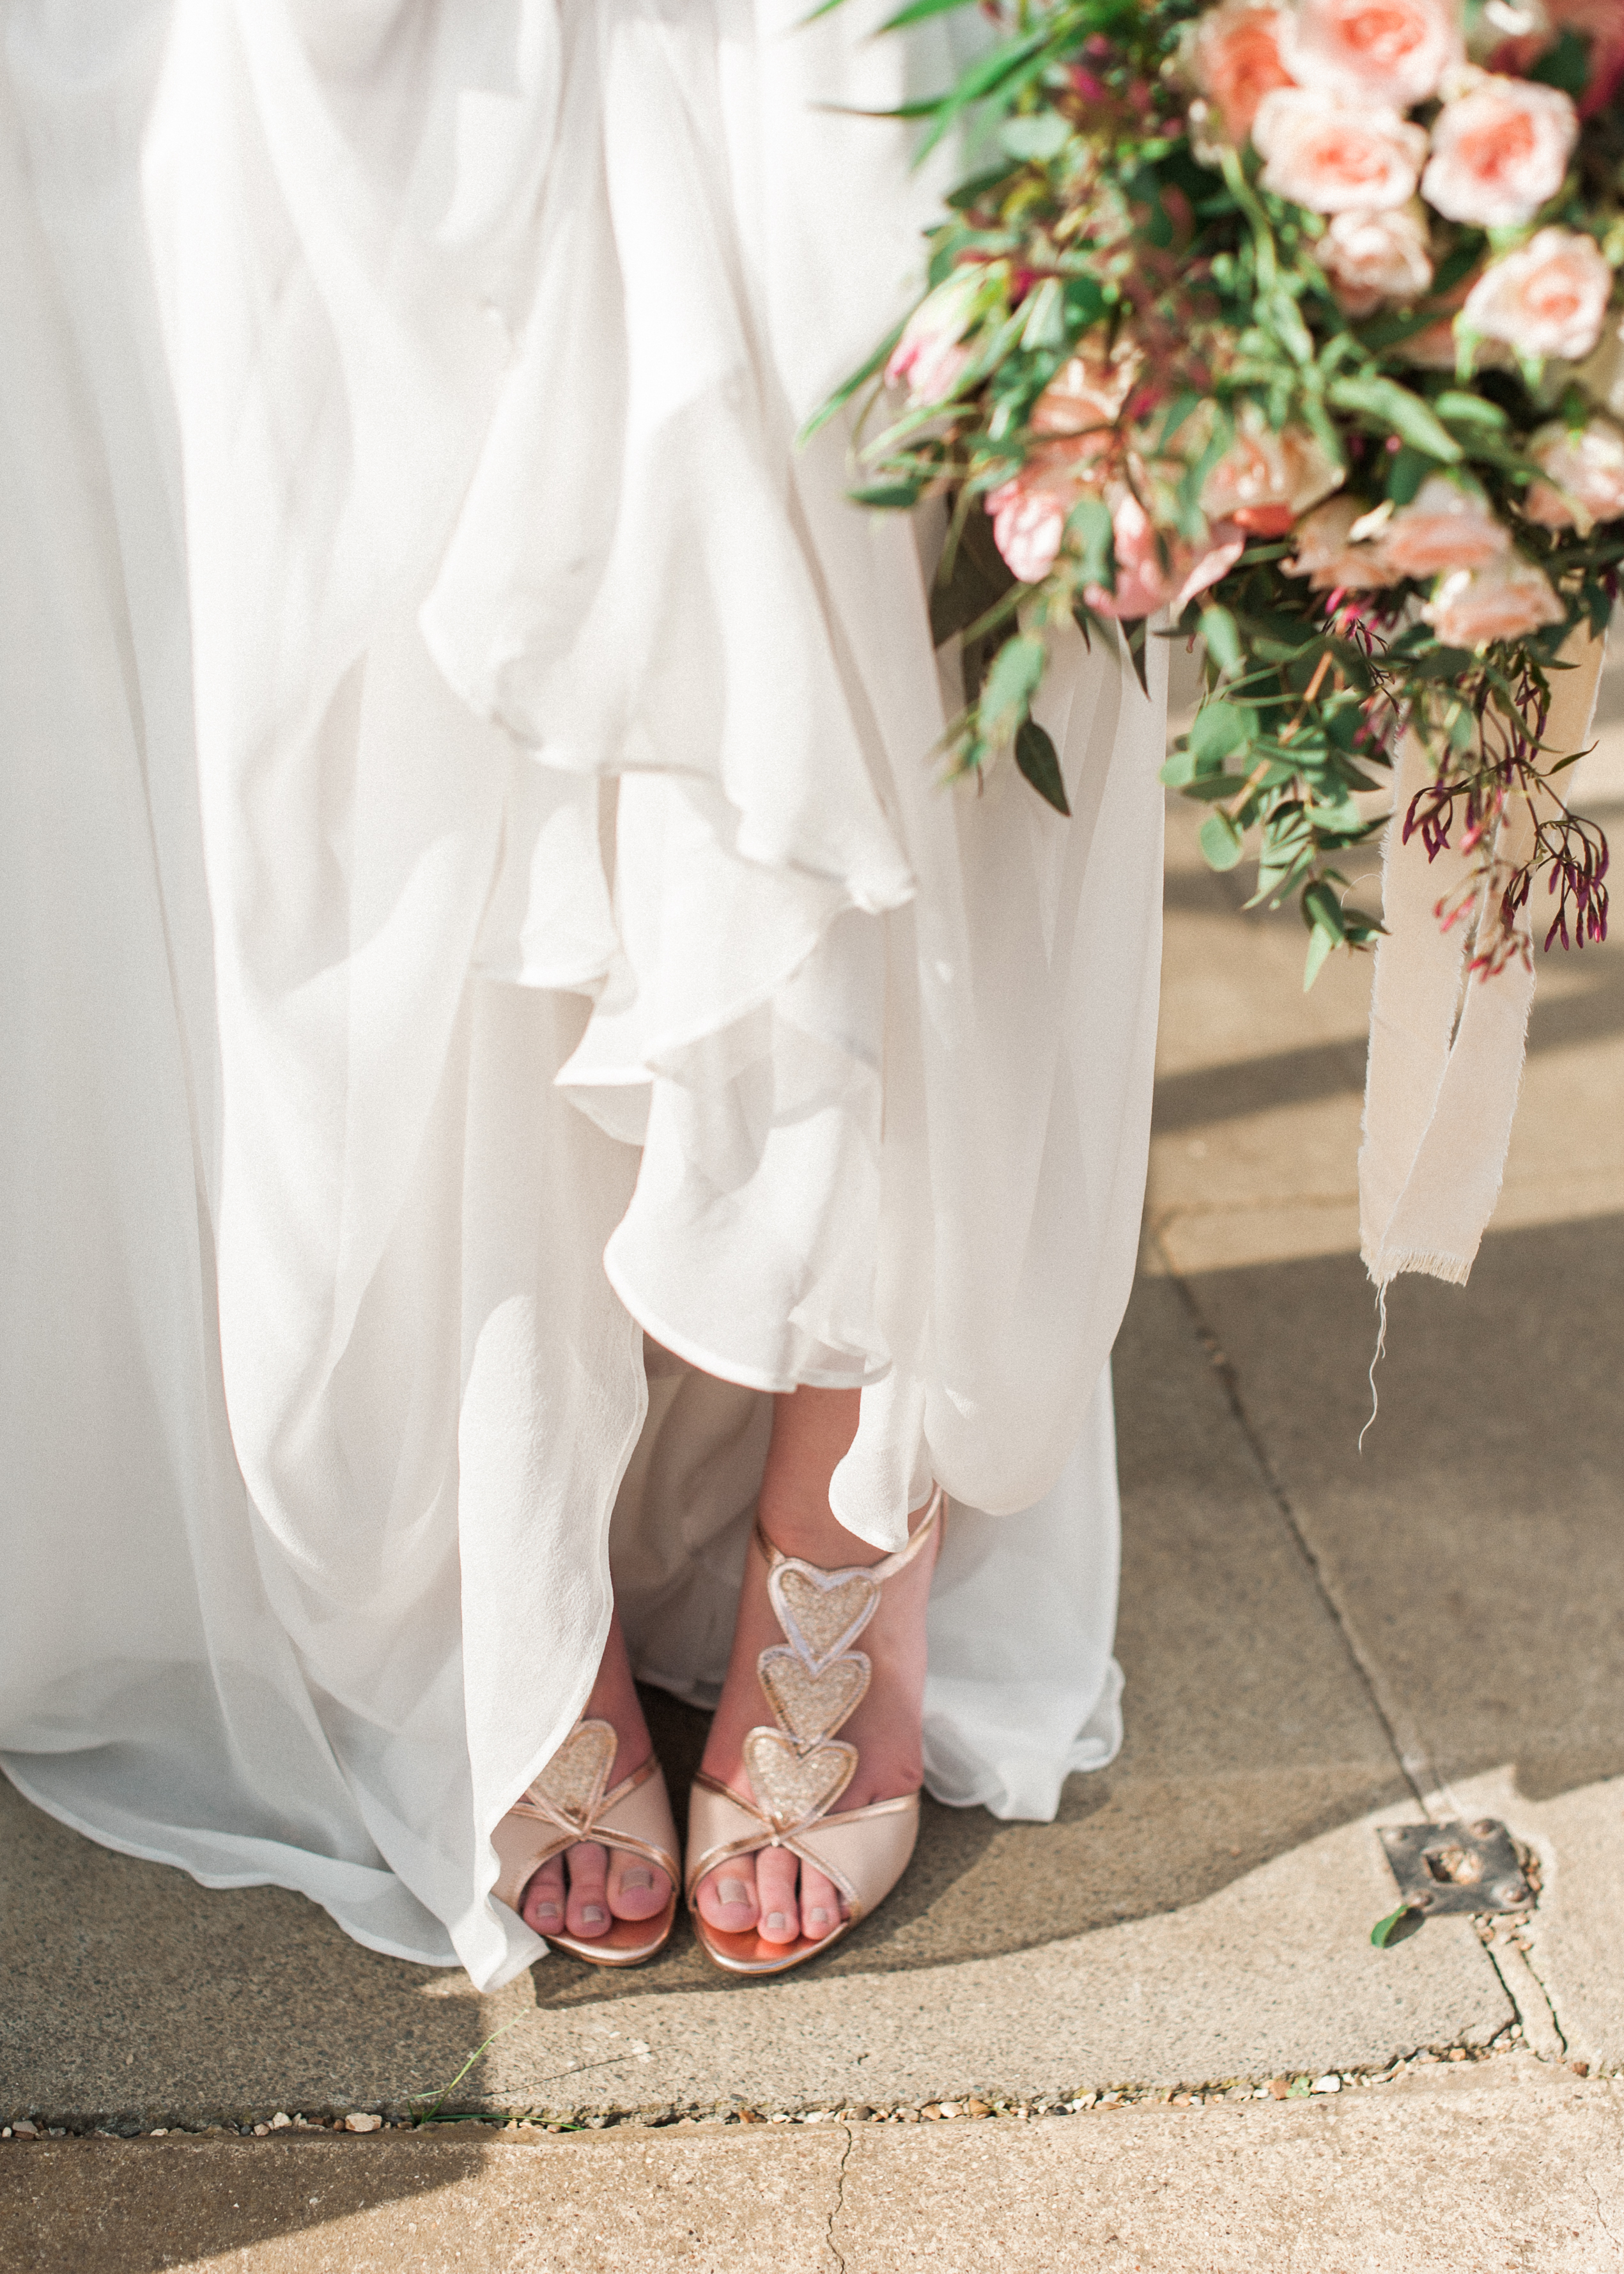 bridal details of silk wedding dress skirt, glittery shoes and bouquet of flowers